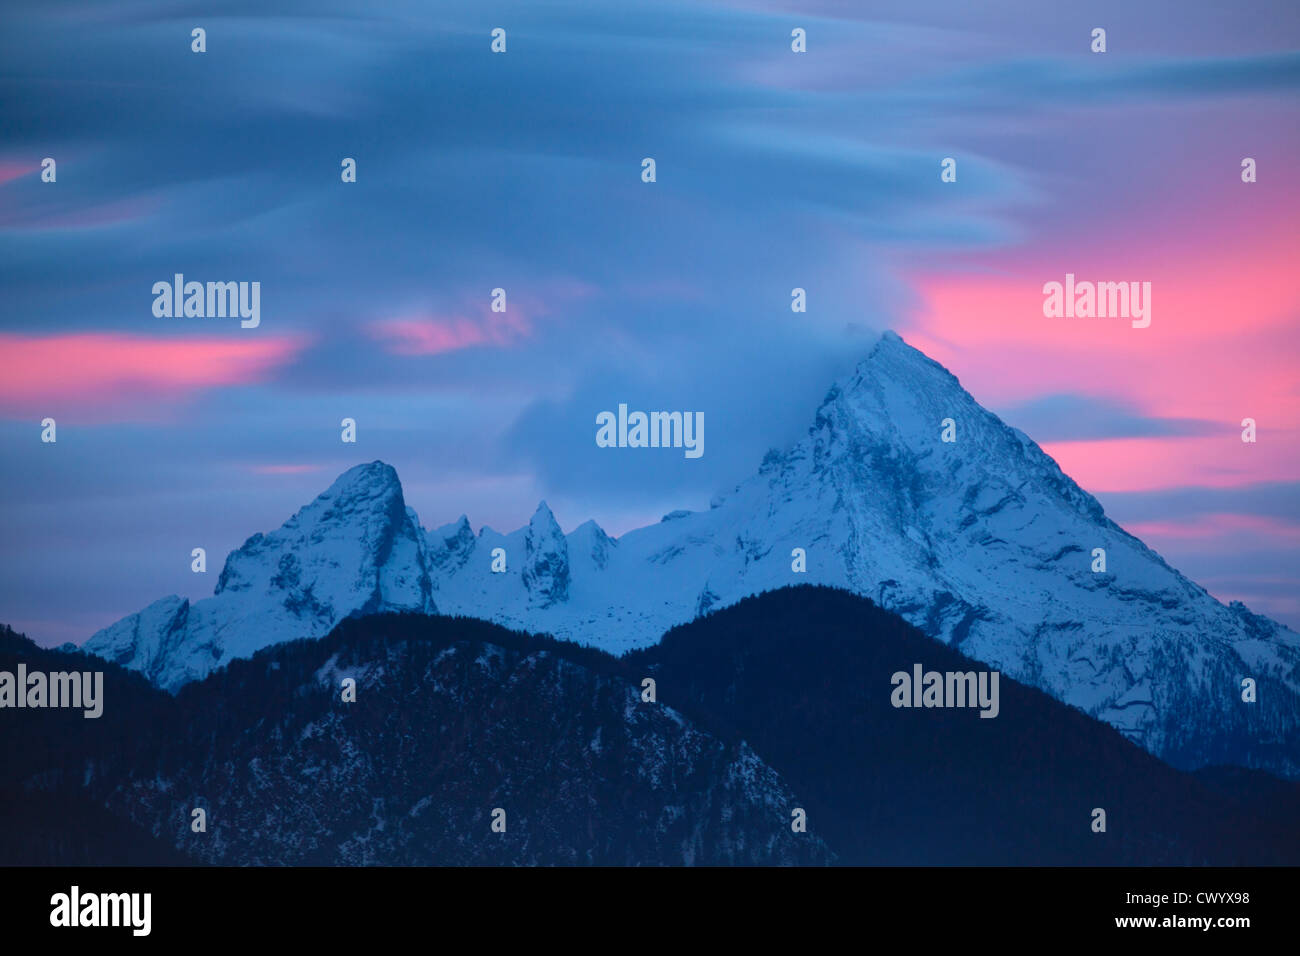 Afterglow above the Watzmann, Berchtesgaden Alps, Bavaria, Germany - Stock Image